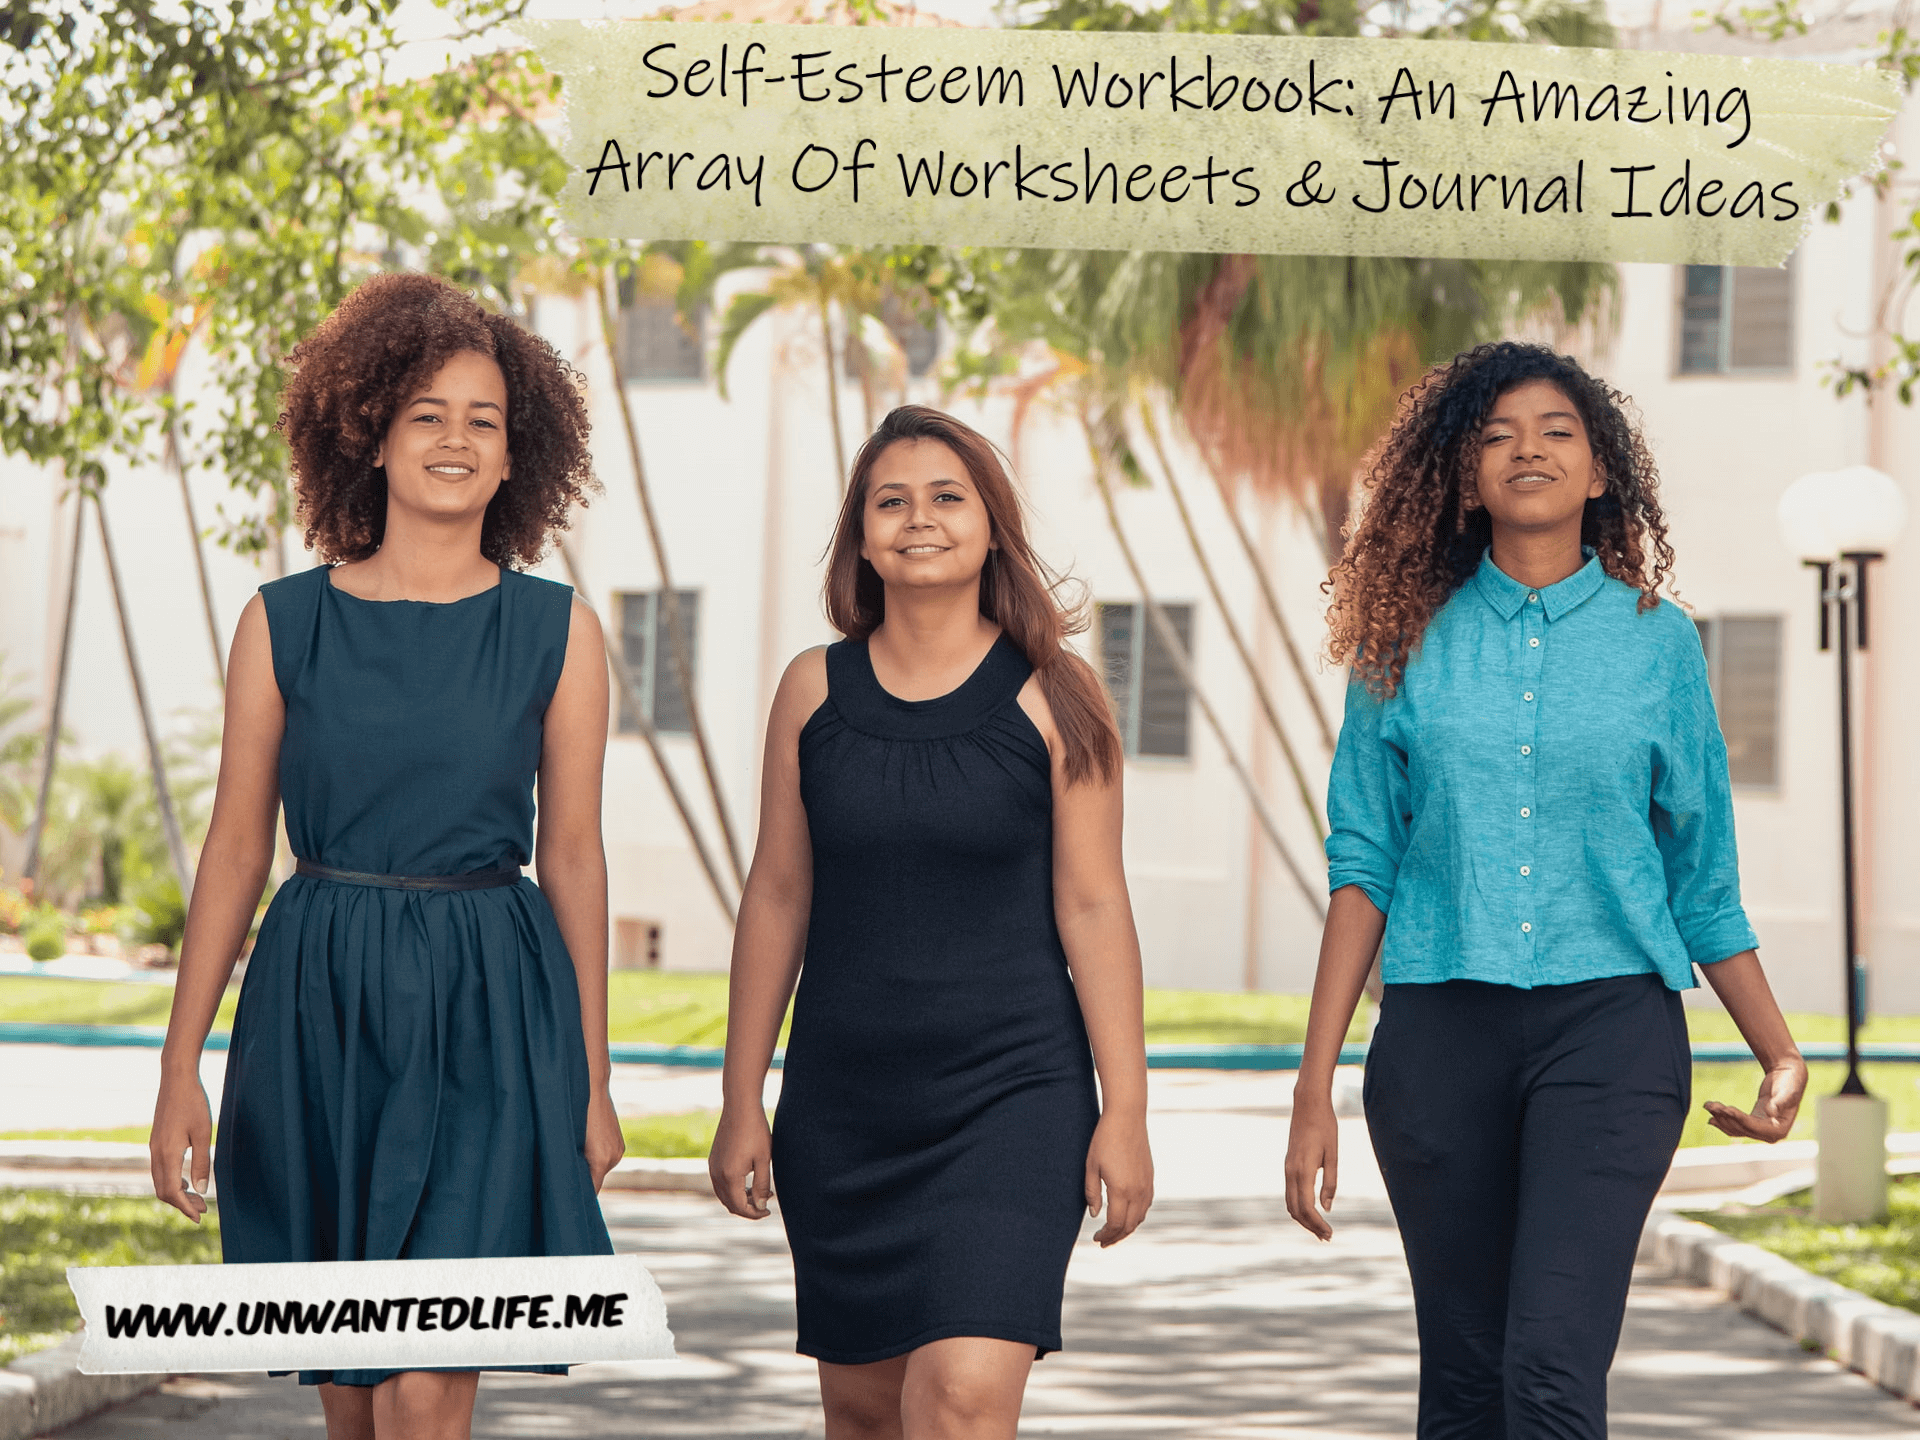 A photo three confident women of black and brown heritage walking together to represent the topic of the article